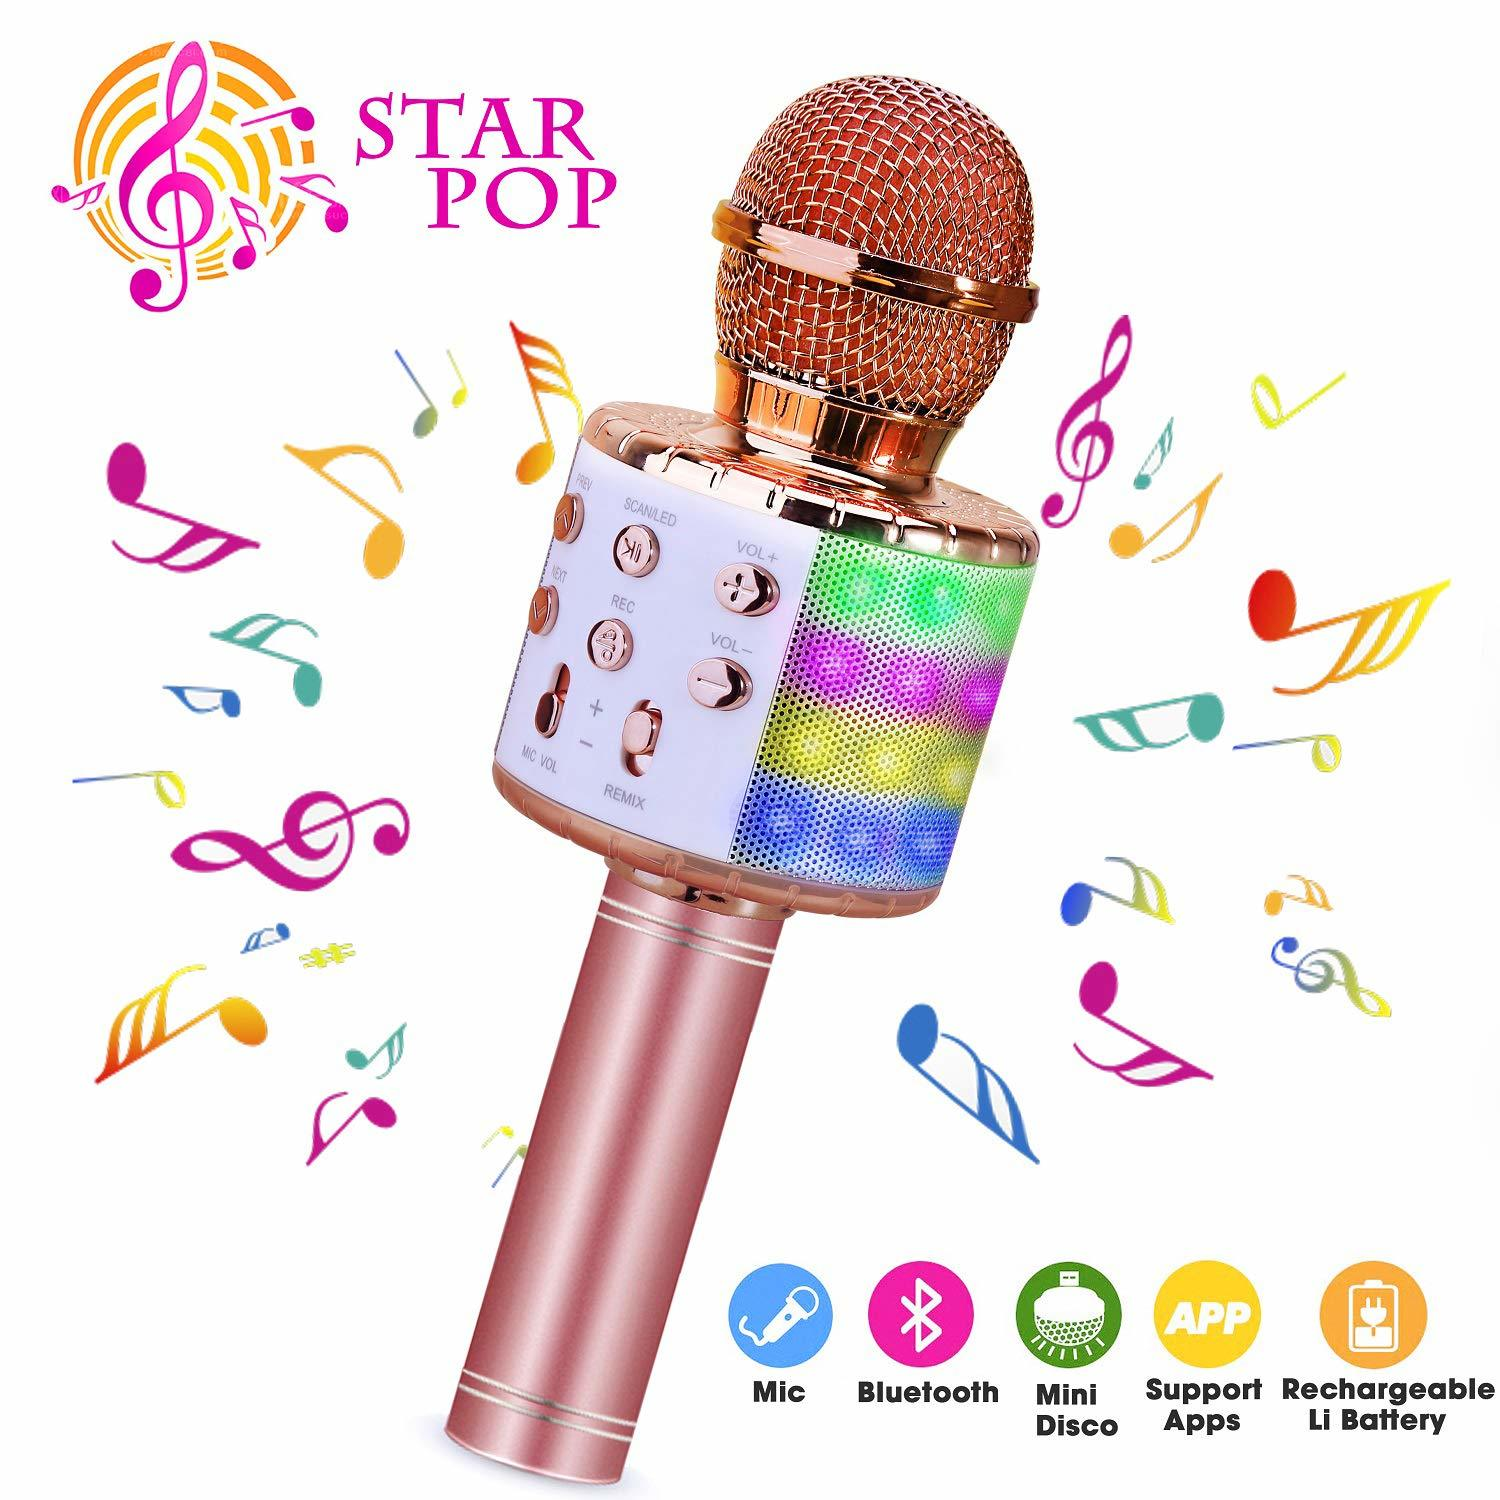 Wireless Karaoke Record Microphone 4 In 1 Bluetooth Handheld Portable Speaker Machine Home KTV Player For Android & IOS Devices